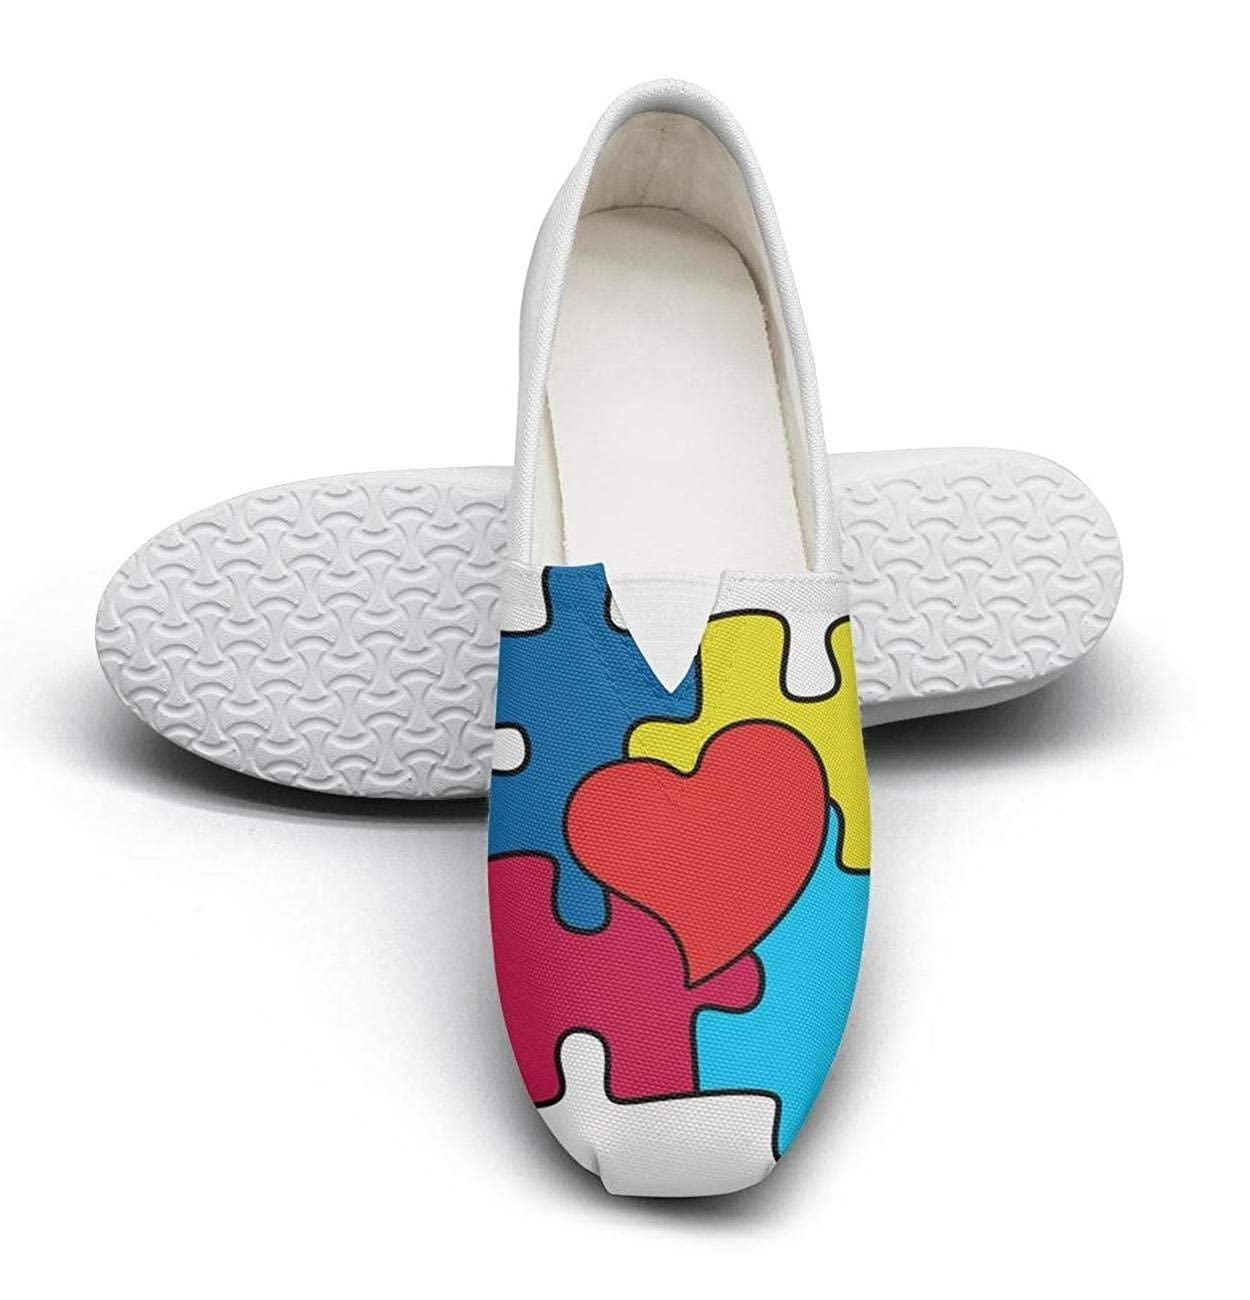 nkfbx World Autism Awareness Day Fashion Flat Canva Shoes for Women Running